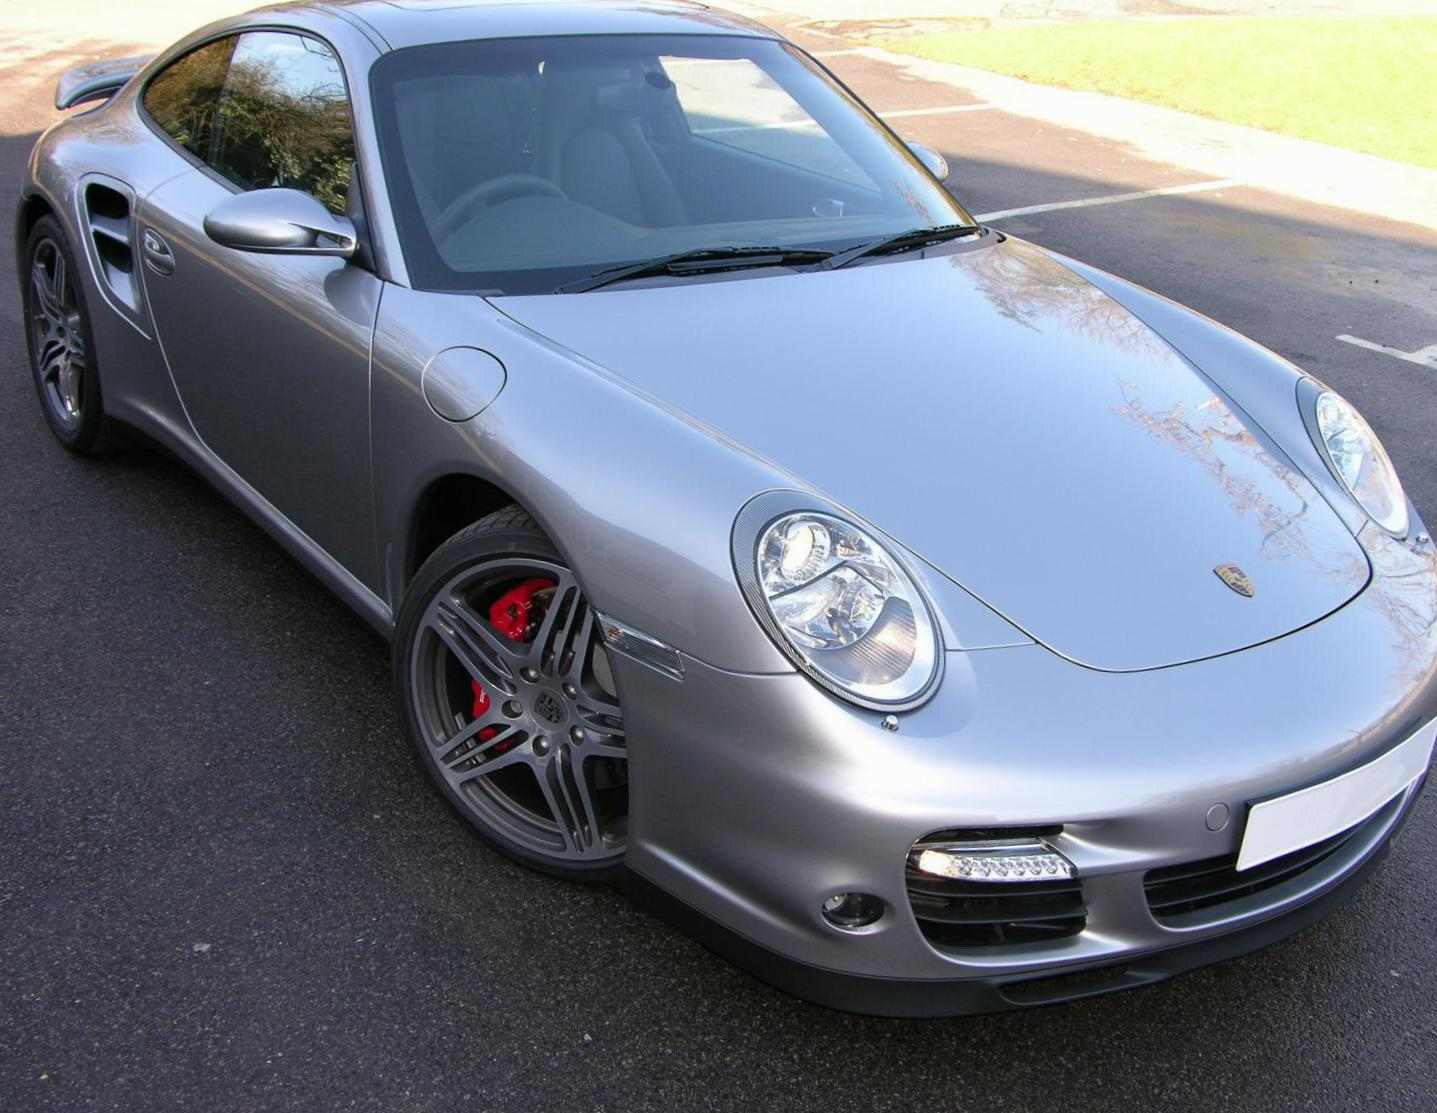 Porsche 911 Turbo new 2013